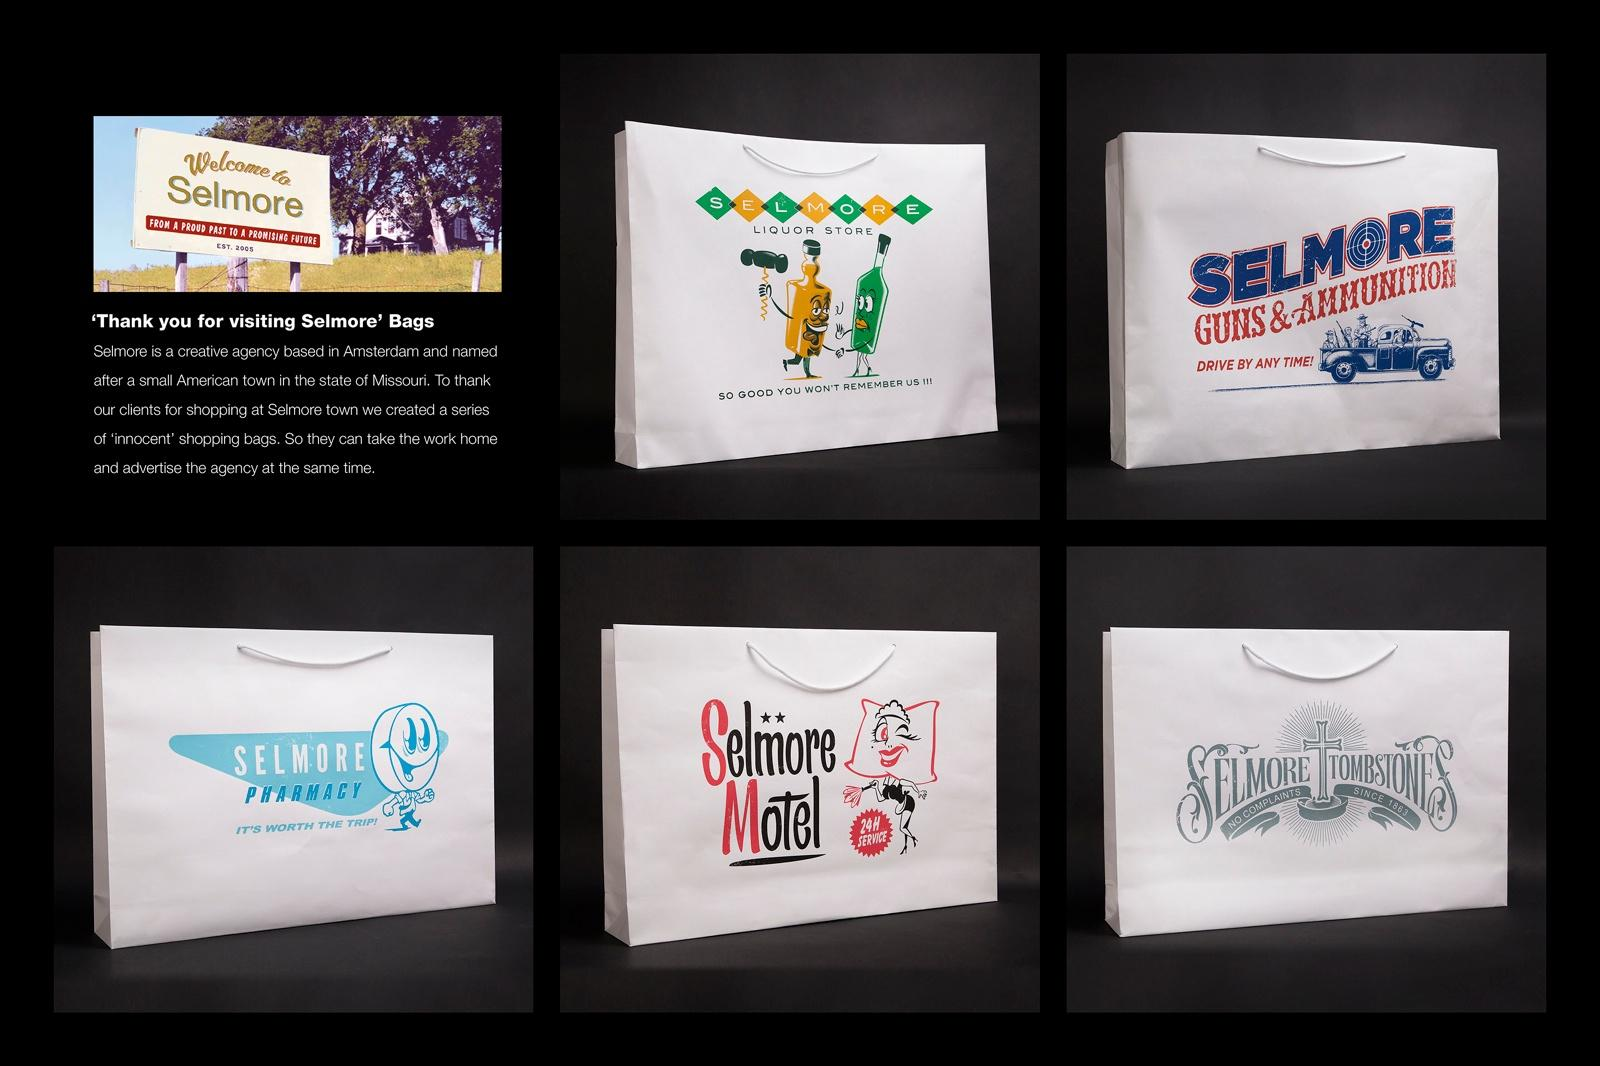 Selmore Direct Ad -  Thank You for Visiting Selmore Bags